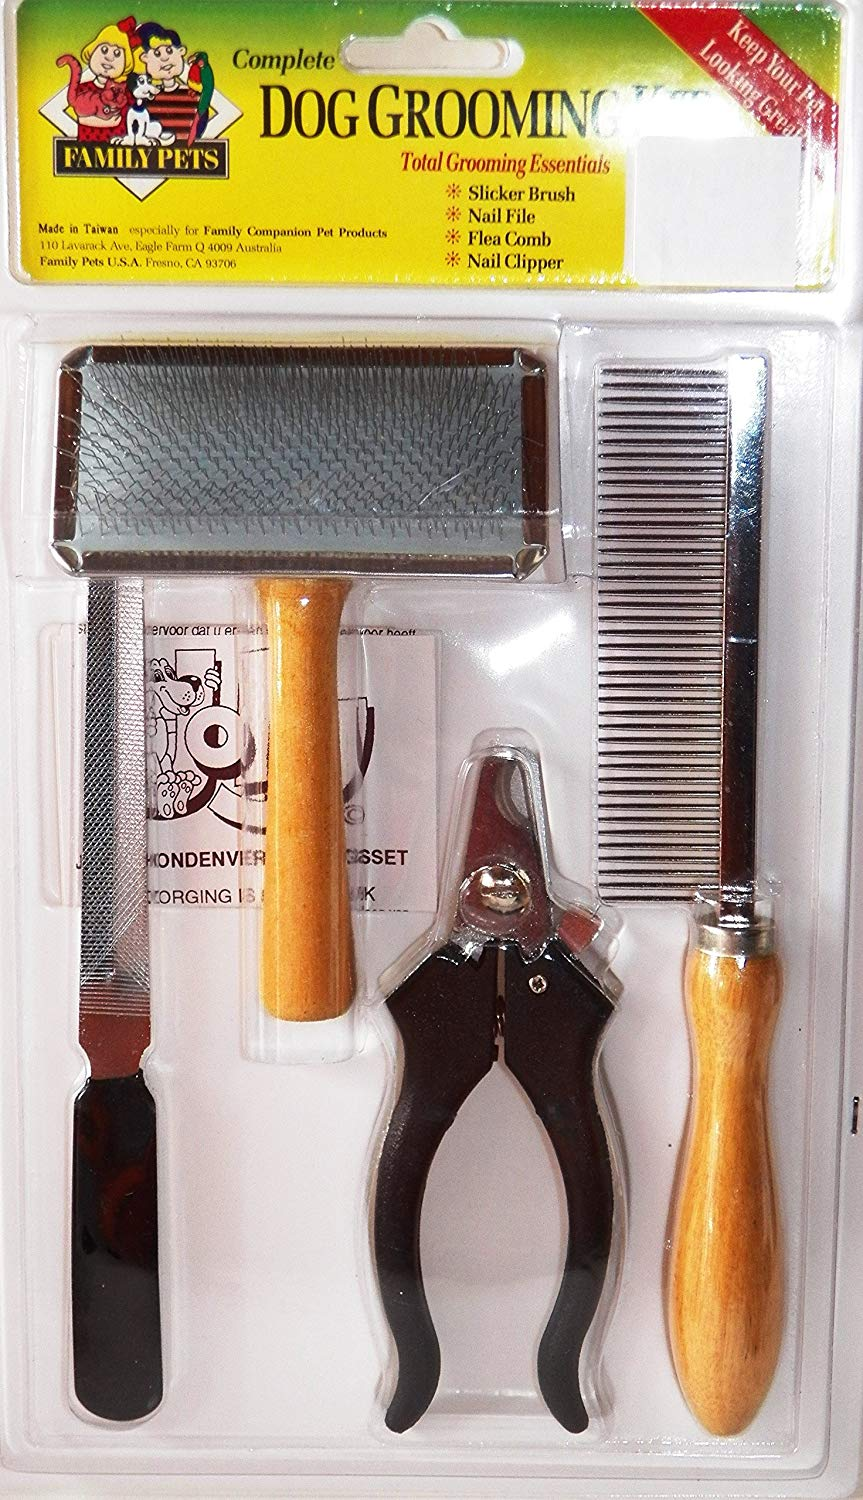 Cheap Kit Dog Grooming Find Kit Dog Grooming Deals On Line At